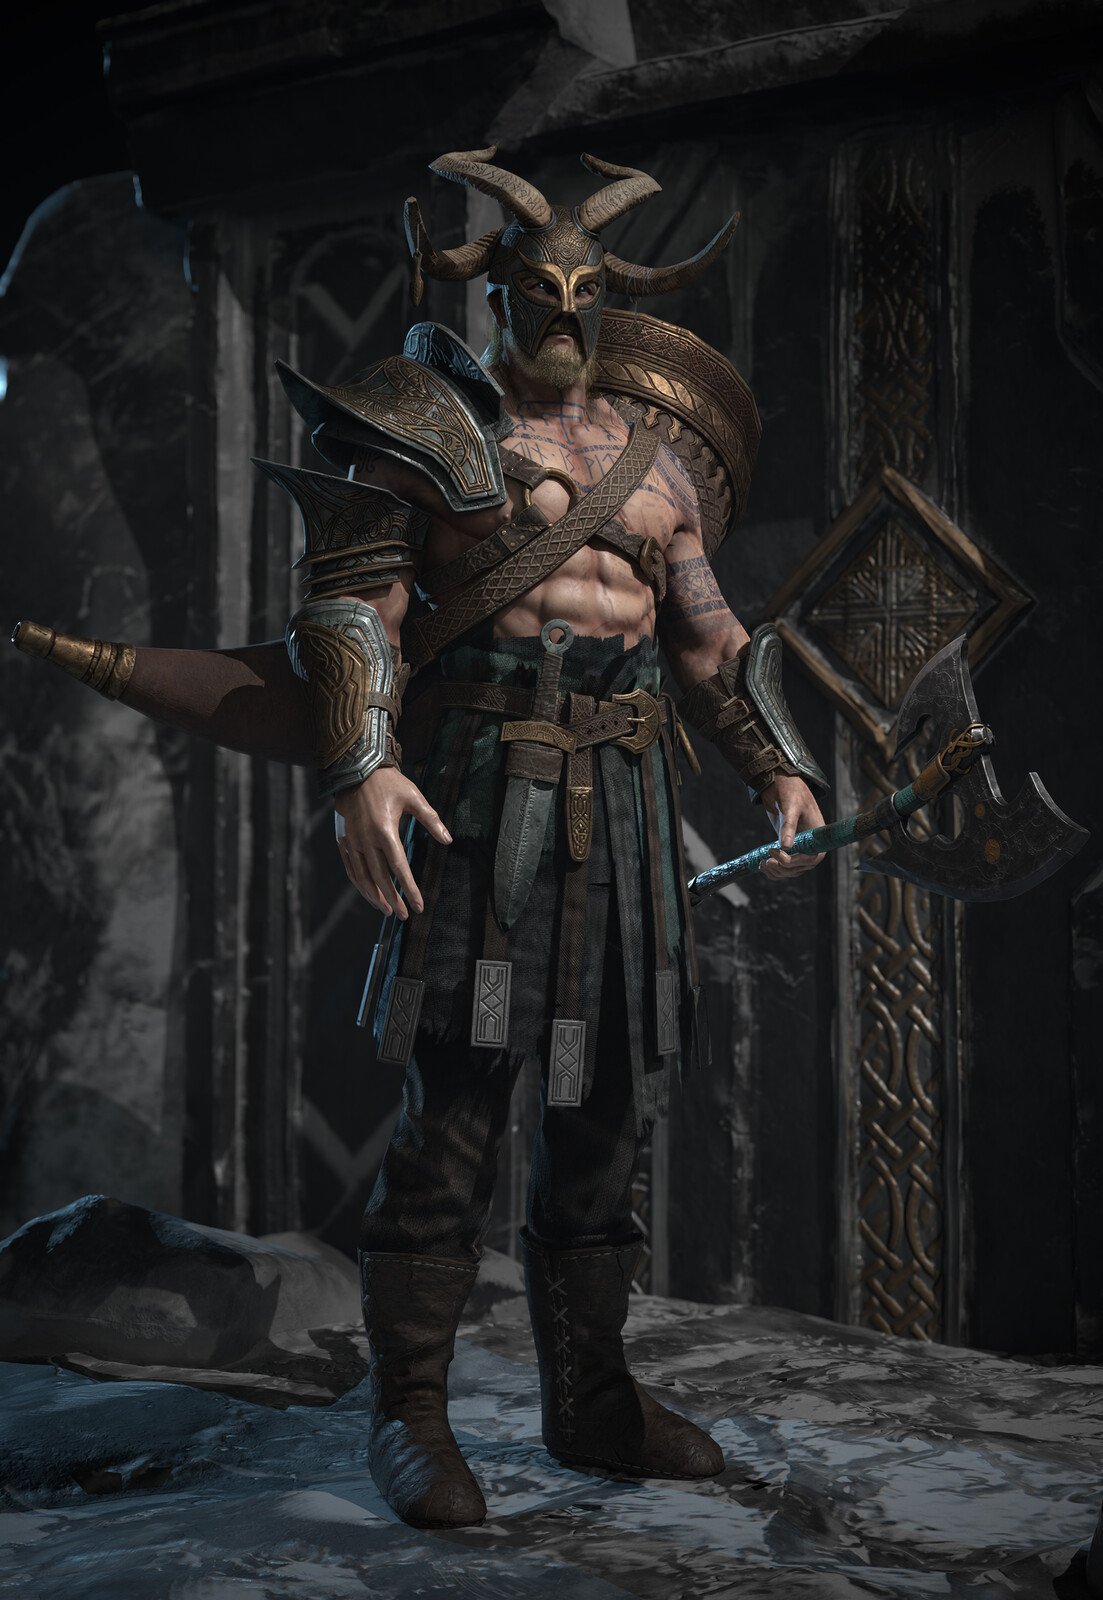 As the youngest son of Odin and holder of the mythic Gjallarhorn, Heimdallr was gifted with powerful eyes that can see beyond his own realm. He acts as a guardian for Asgard, a watcher of all realms and he waits for the day he must announce the Ragnarok.